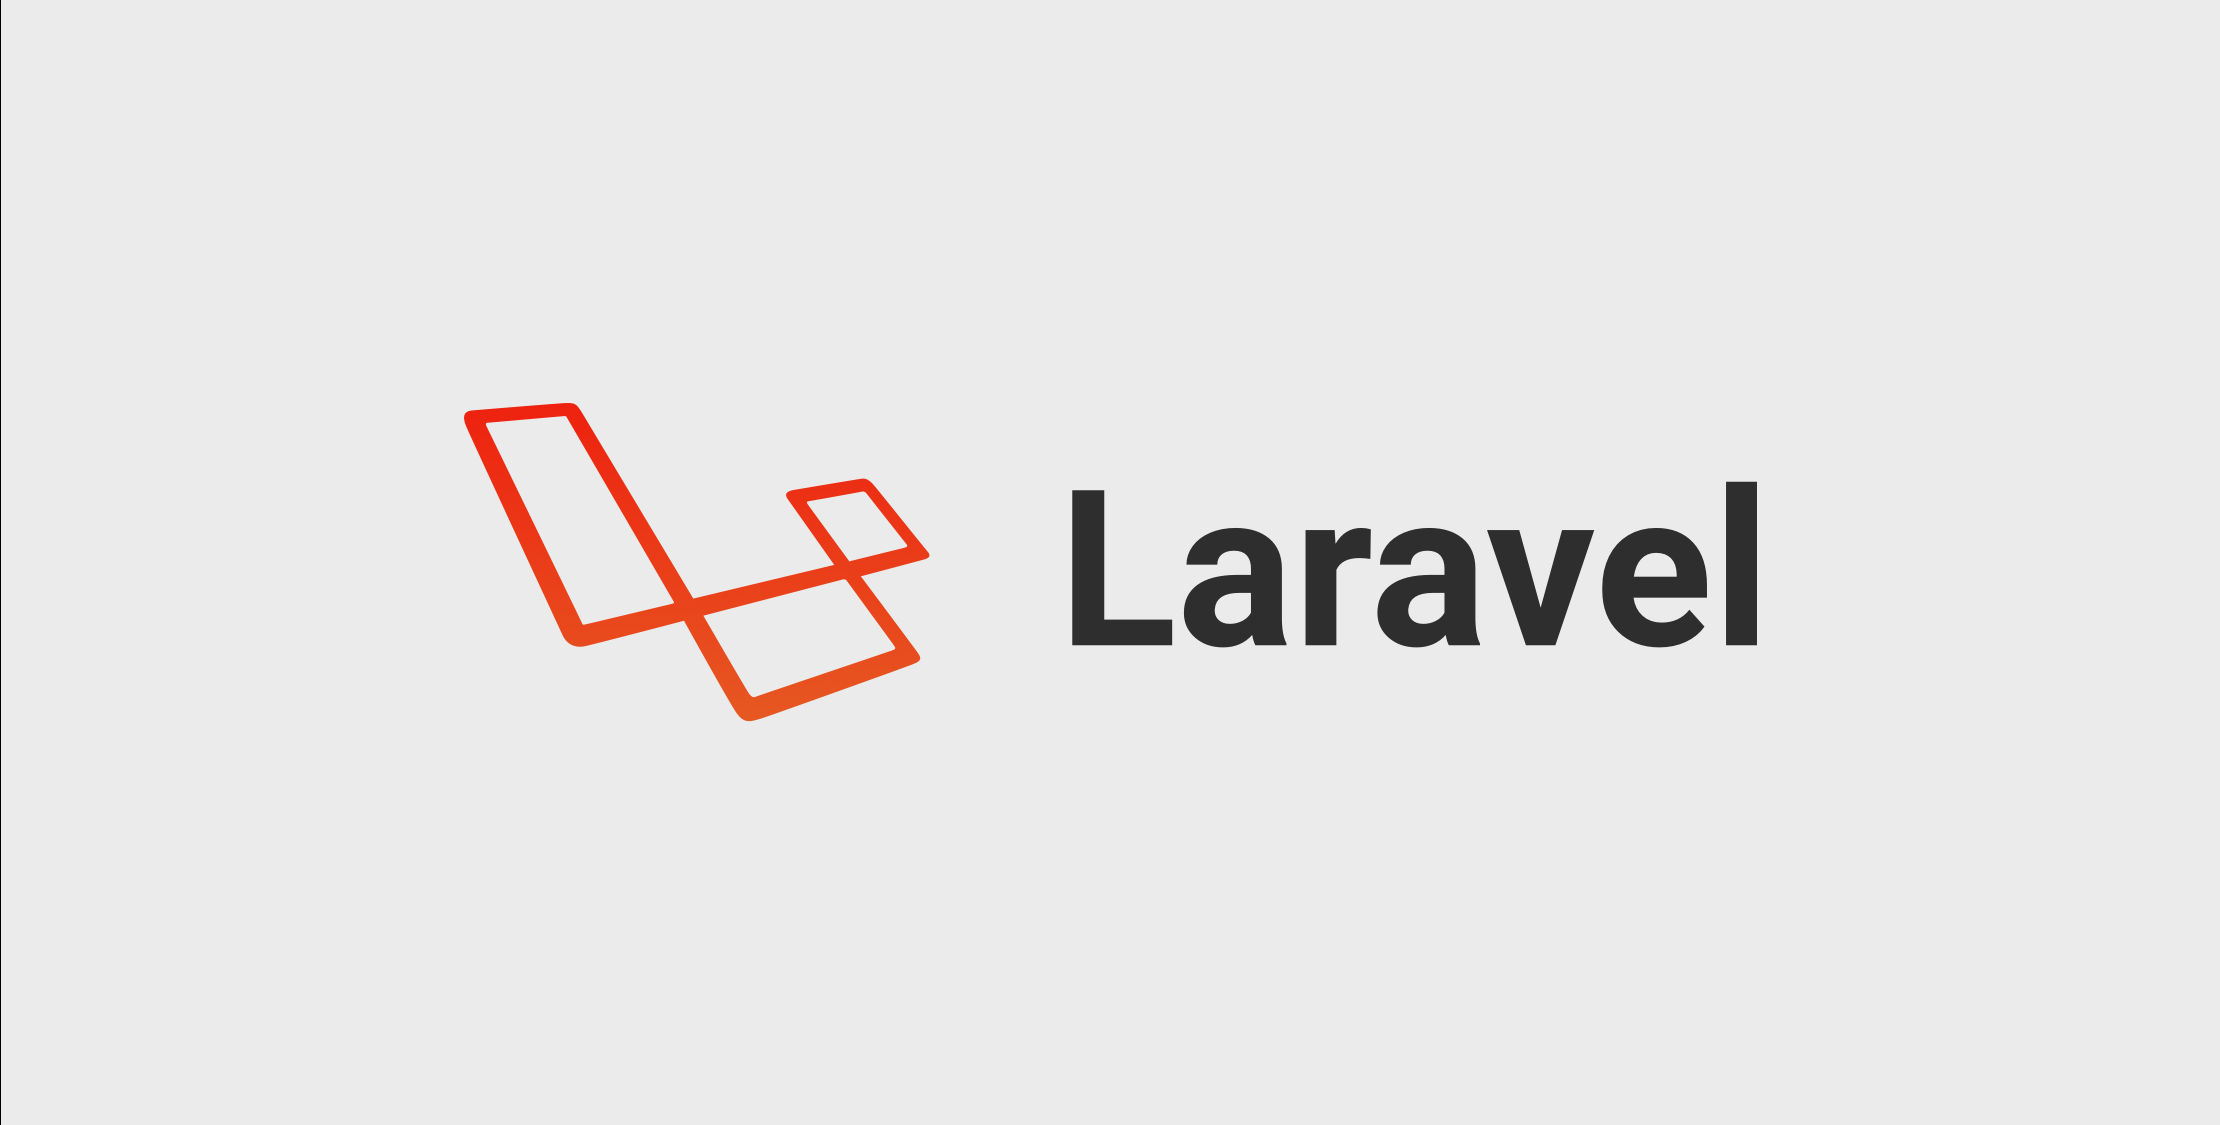 laravel-simple-leader.png